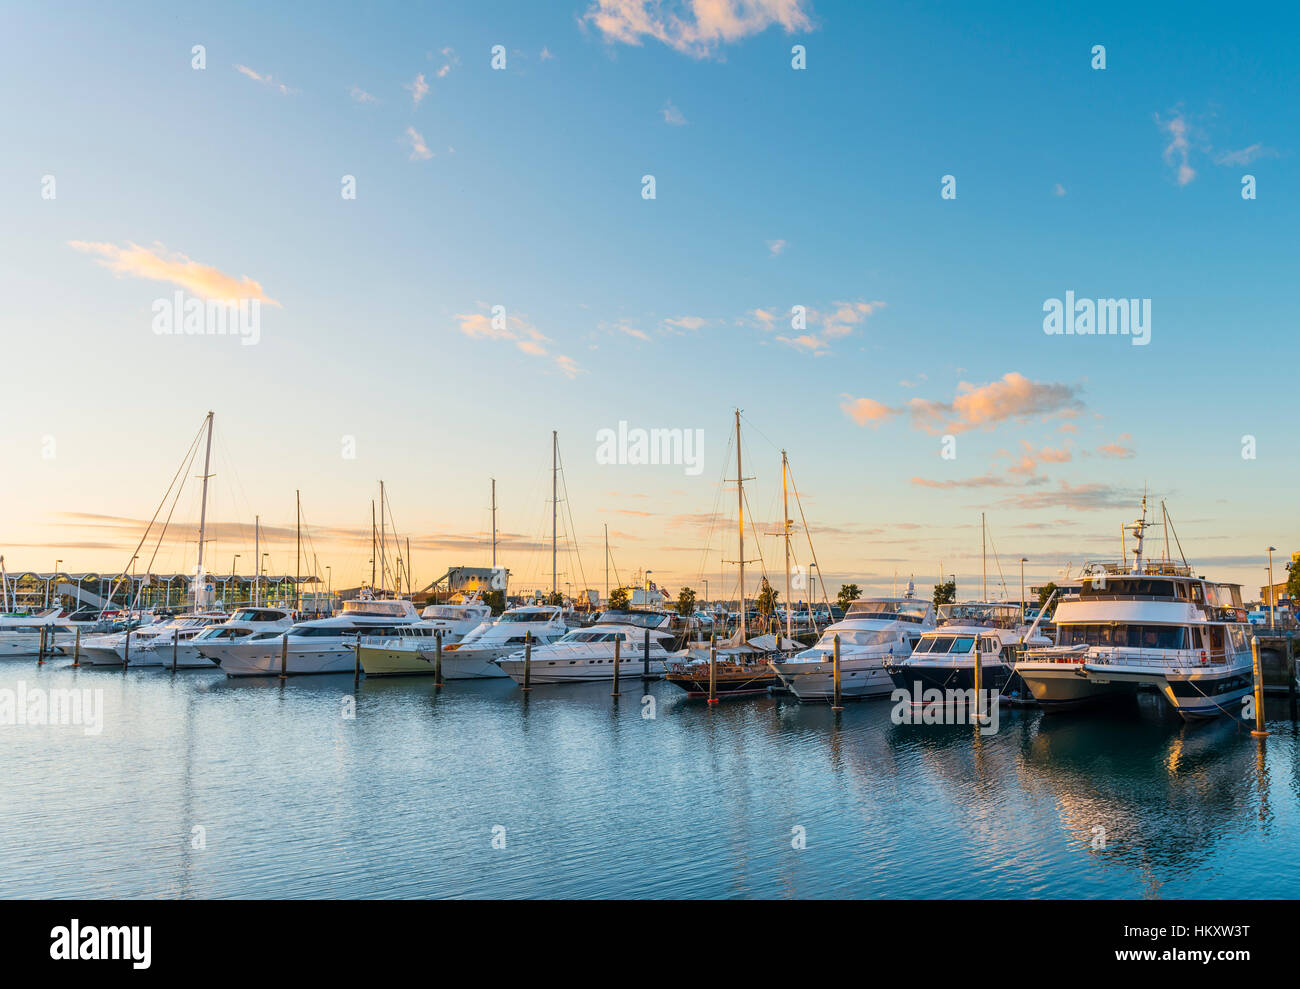 Sunset, sailboats and yachts, Waitemata Harbour, Auckland Region, North Island, New Zealand - Stock Image